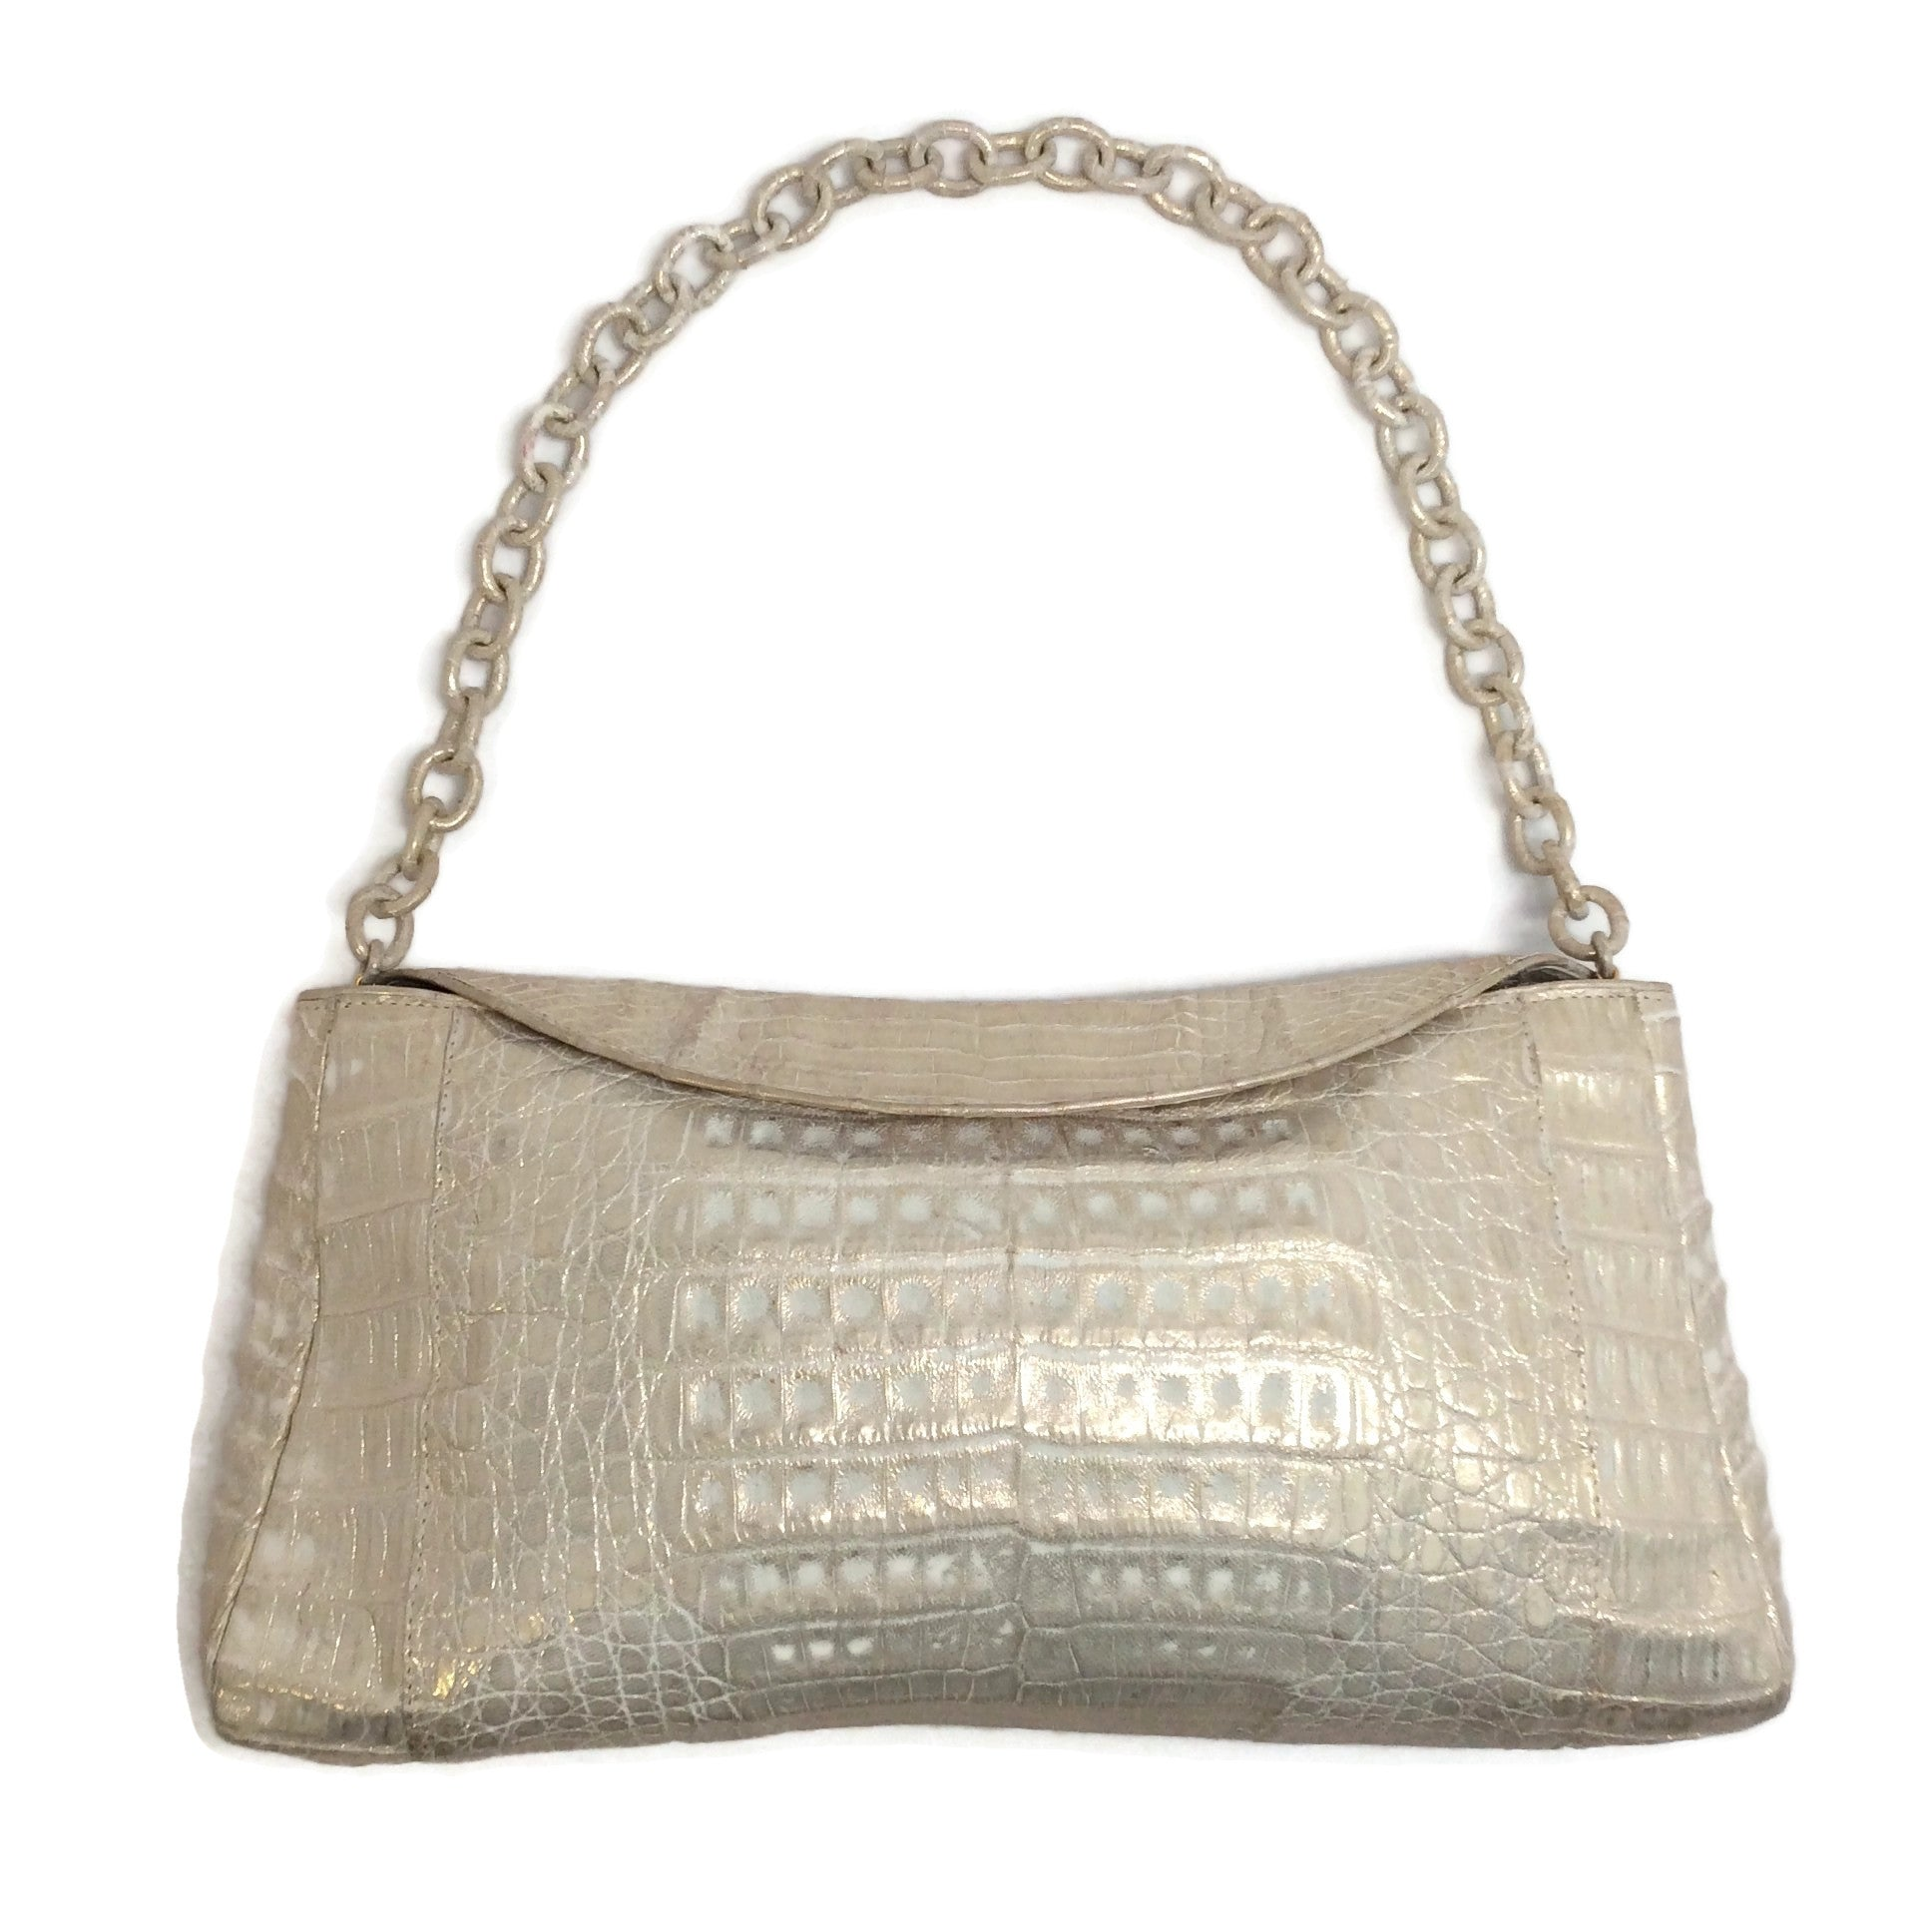 Nancy Gonzalez Light Gold Crocodile Skin Flap Leather Shoulder Bag